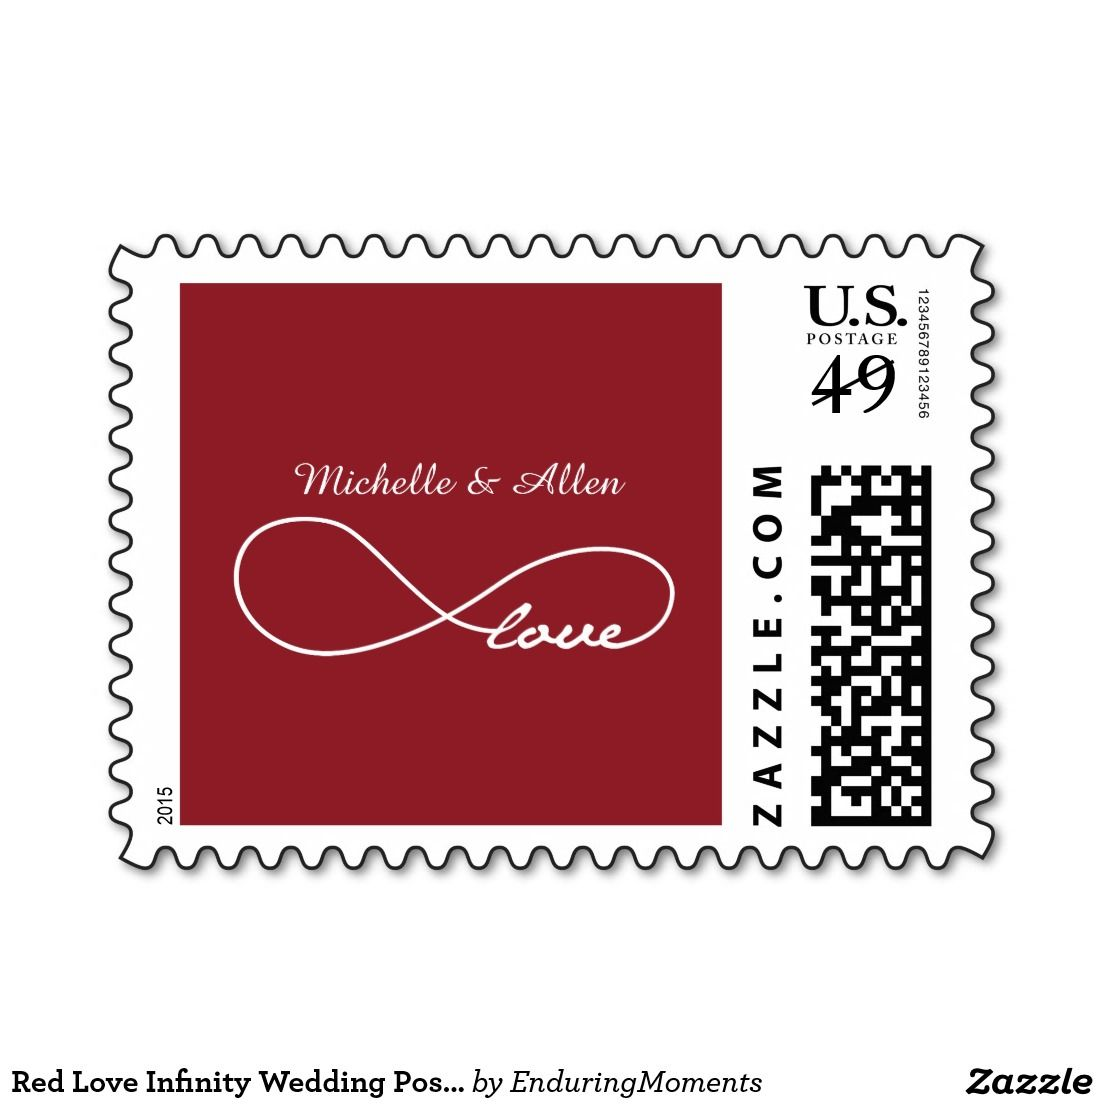 Red Love Infinity Wedding Postage Stamps | Love Stamps - Custom ...